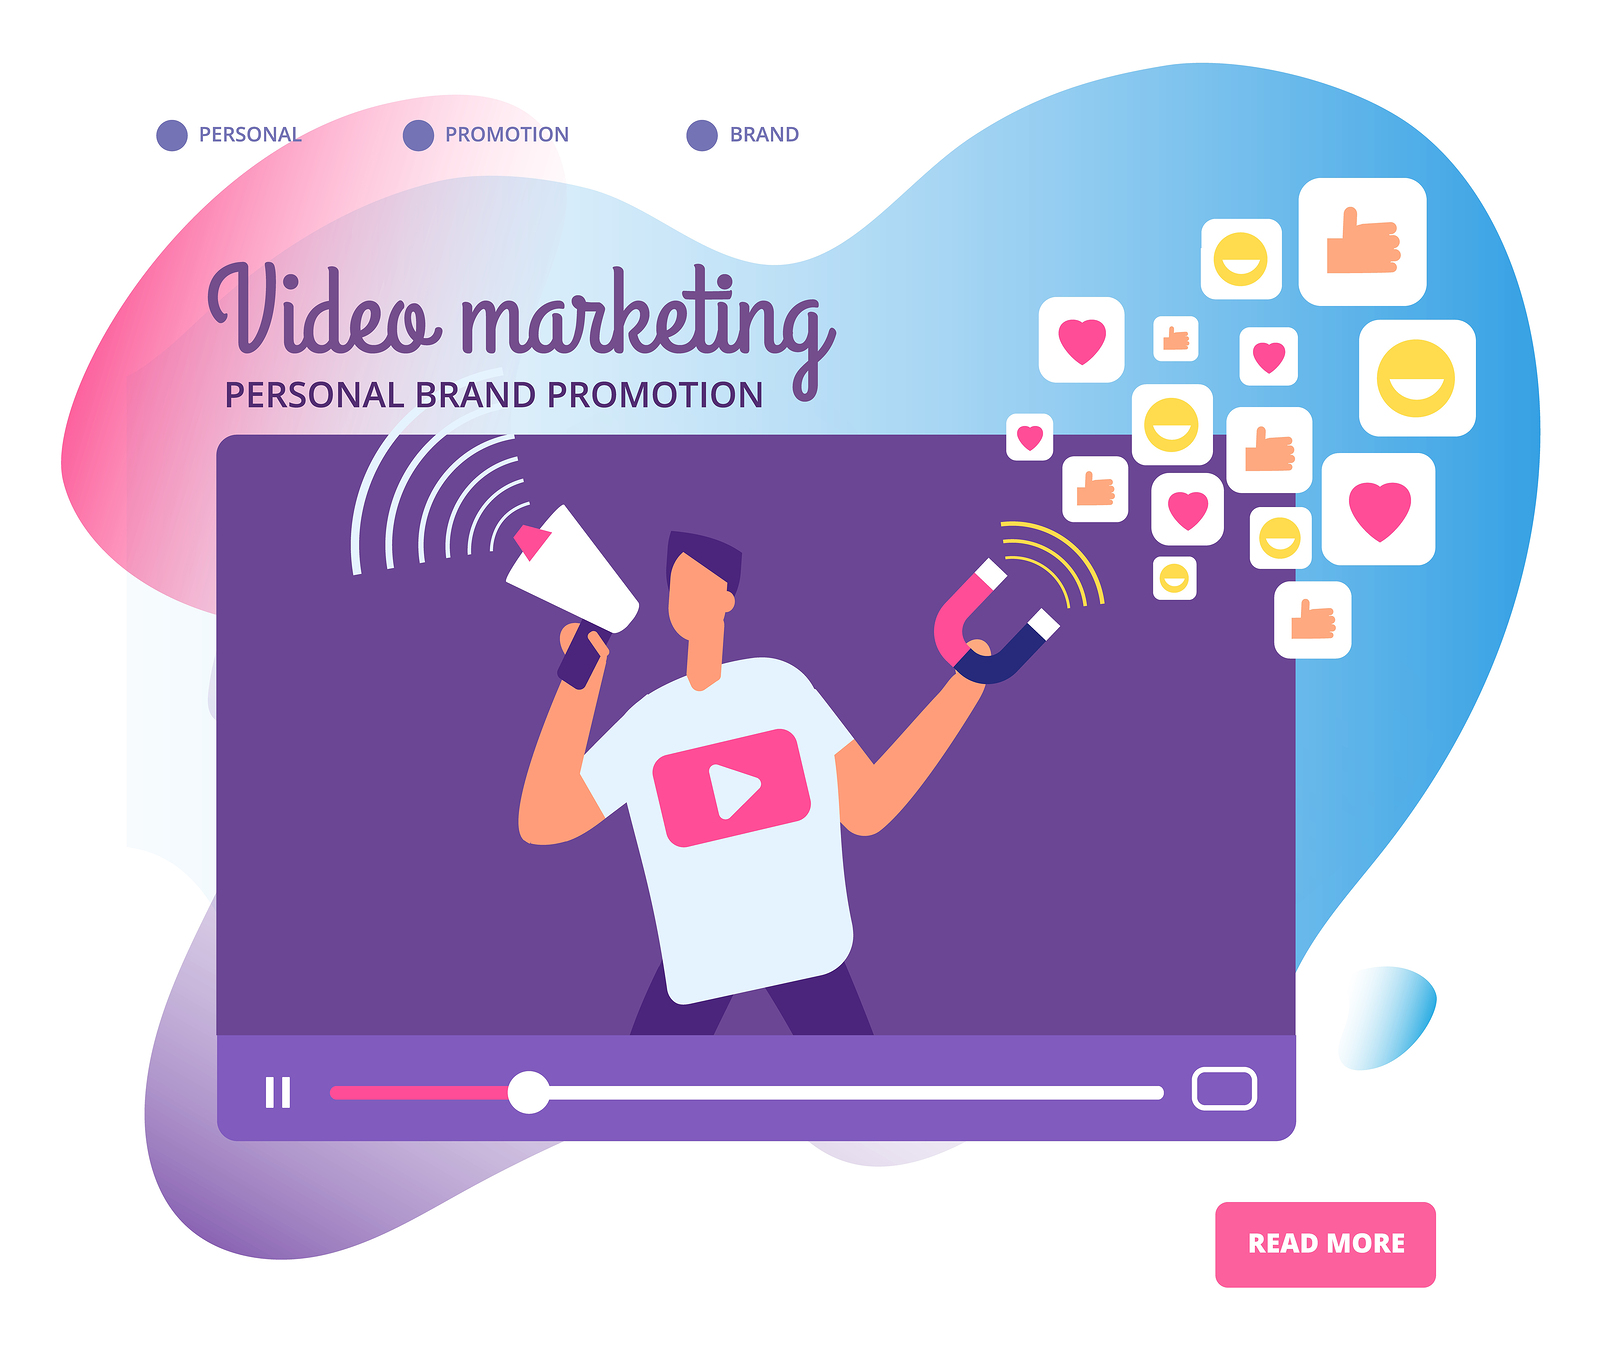 Marchi di successo Usa queste strategie di marketing su YouTube